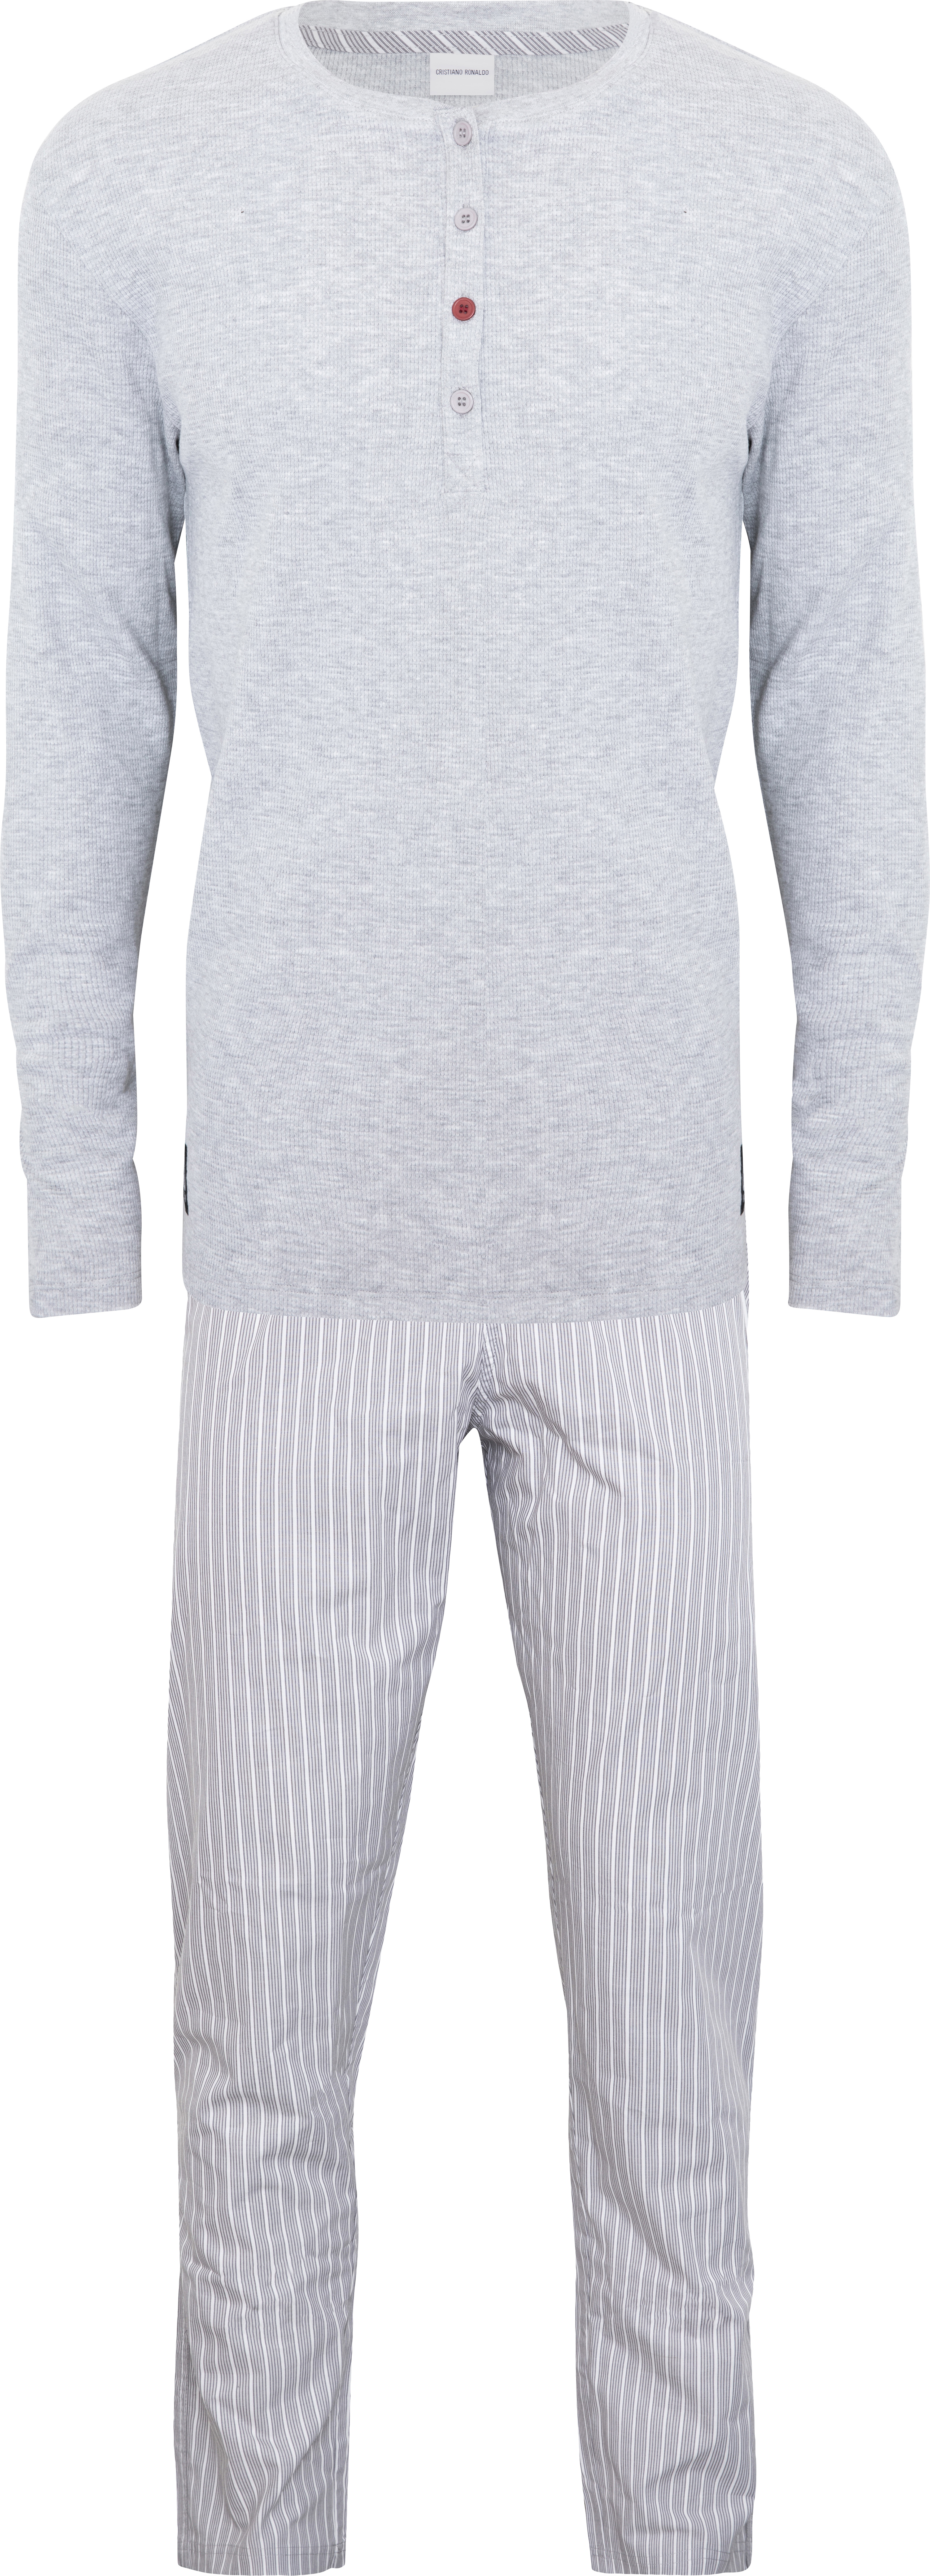 CR7  - Mens Pyjamas Set- Grey